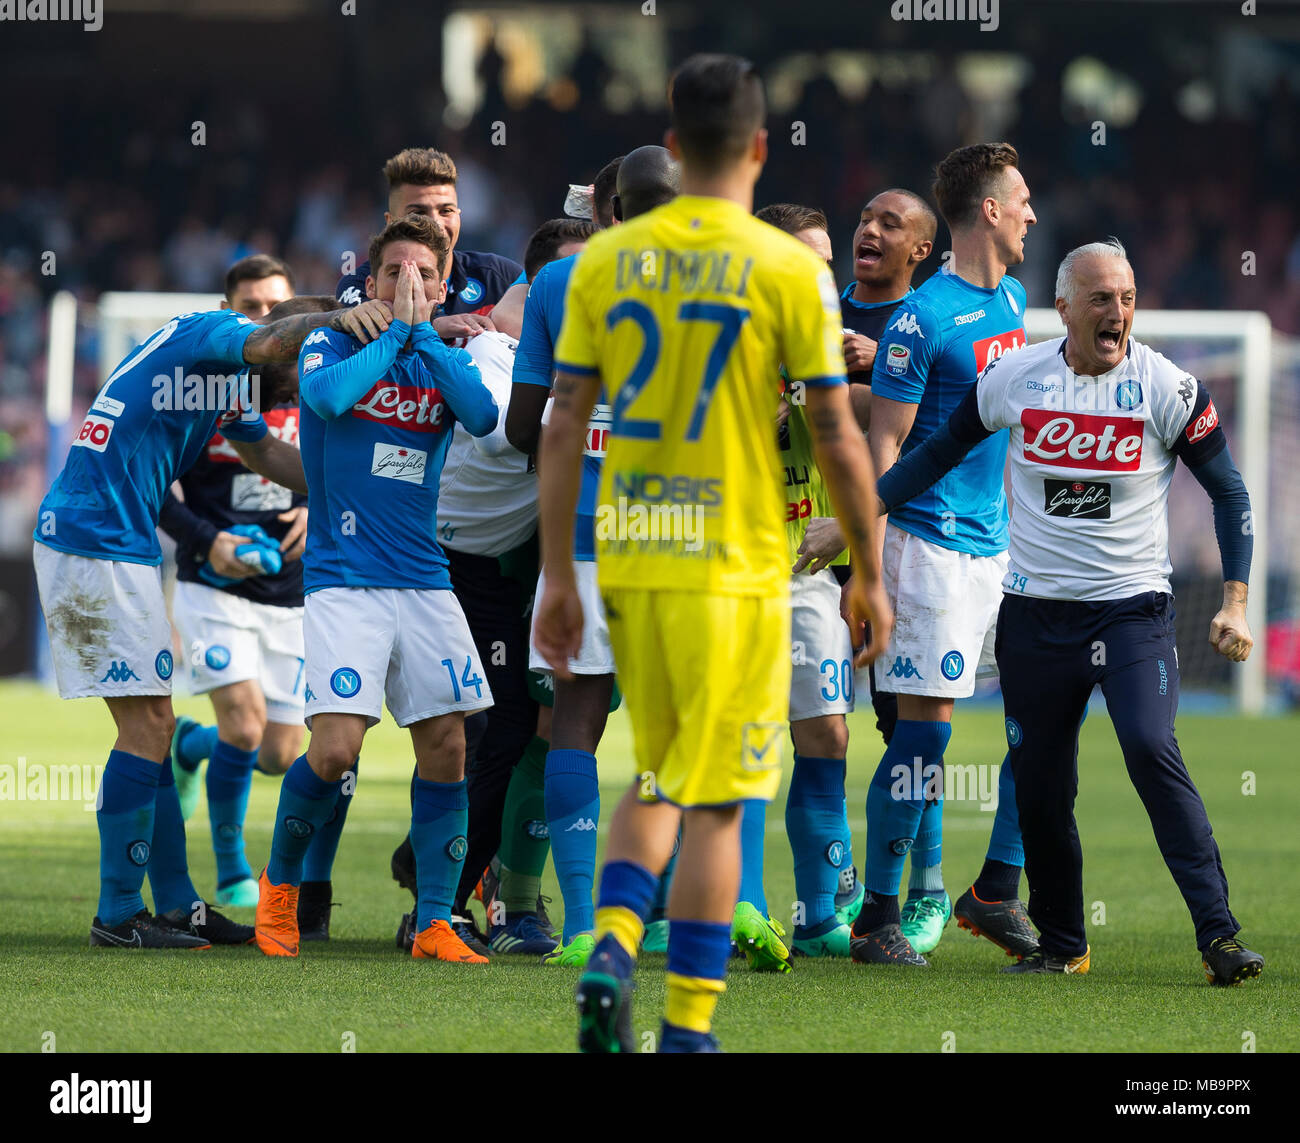 Ssc Napoli Team During Soccer Stock Photos   Ssc Napoli Team During ... ec224d6ae446f